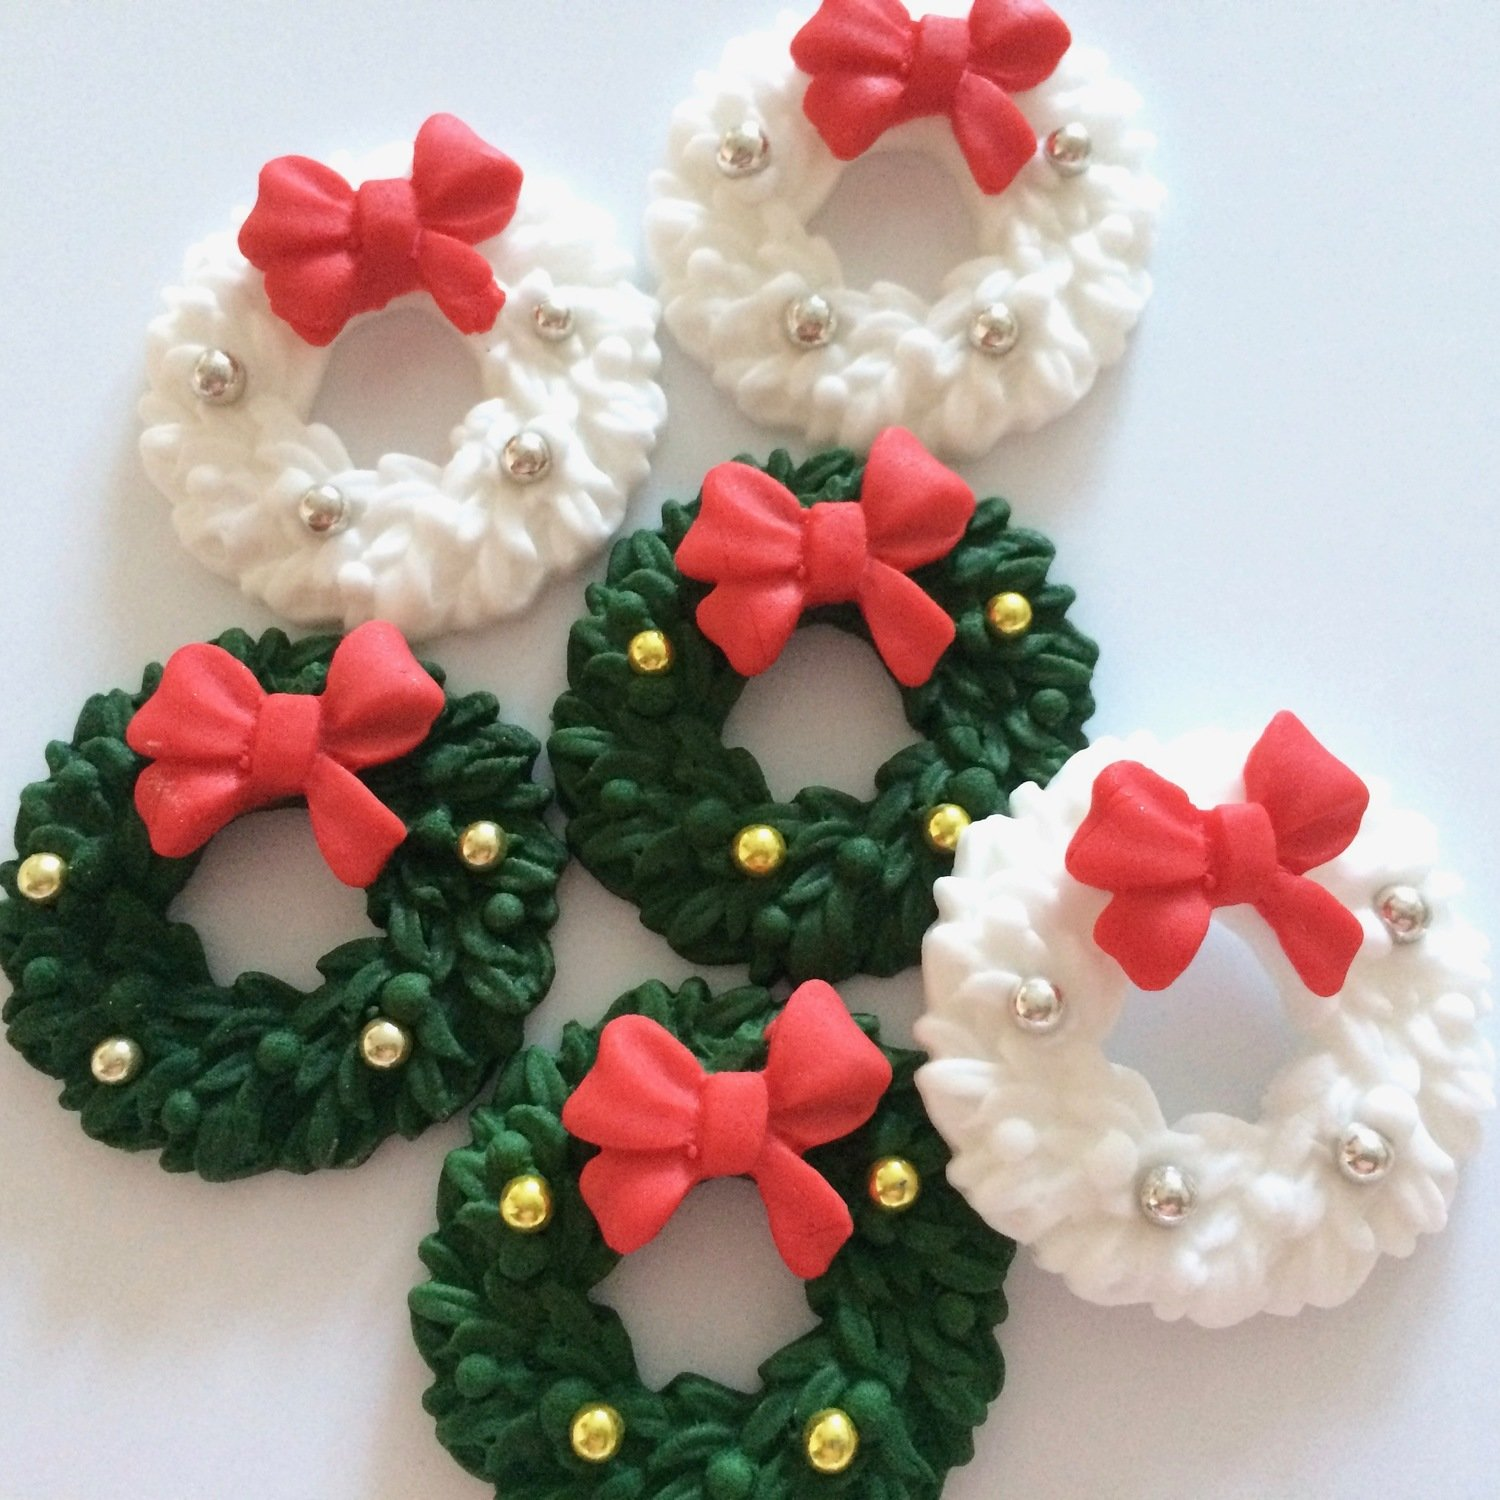 Mixed Christmas Wreaths